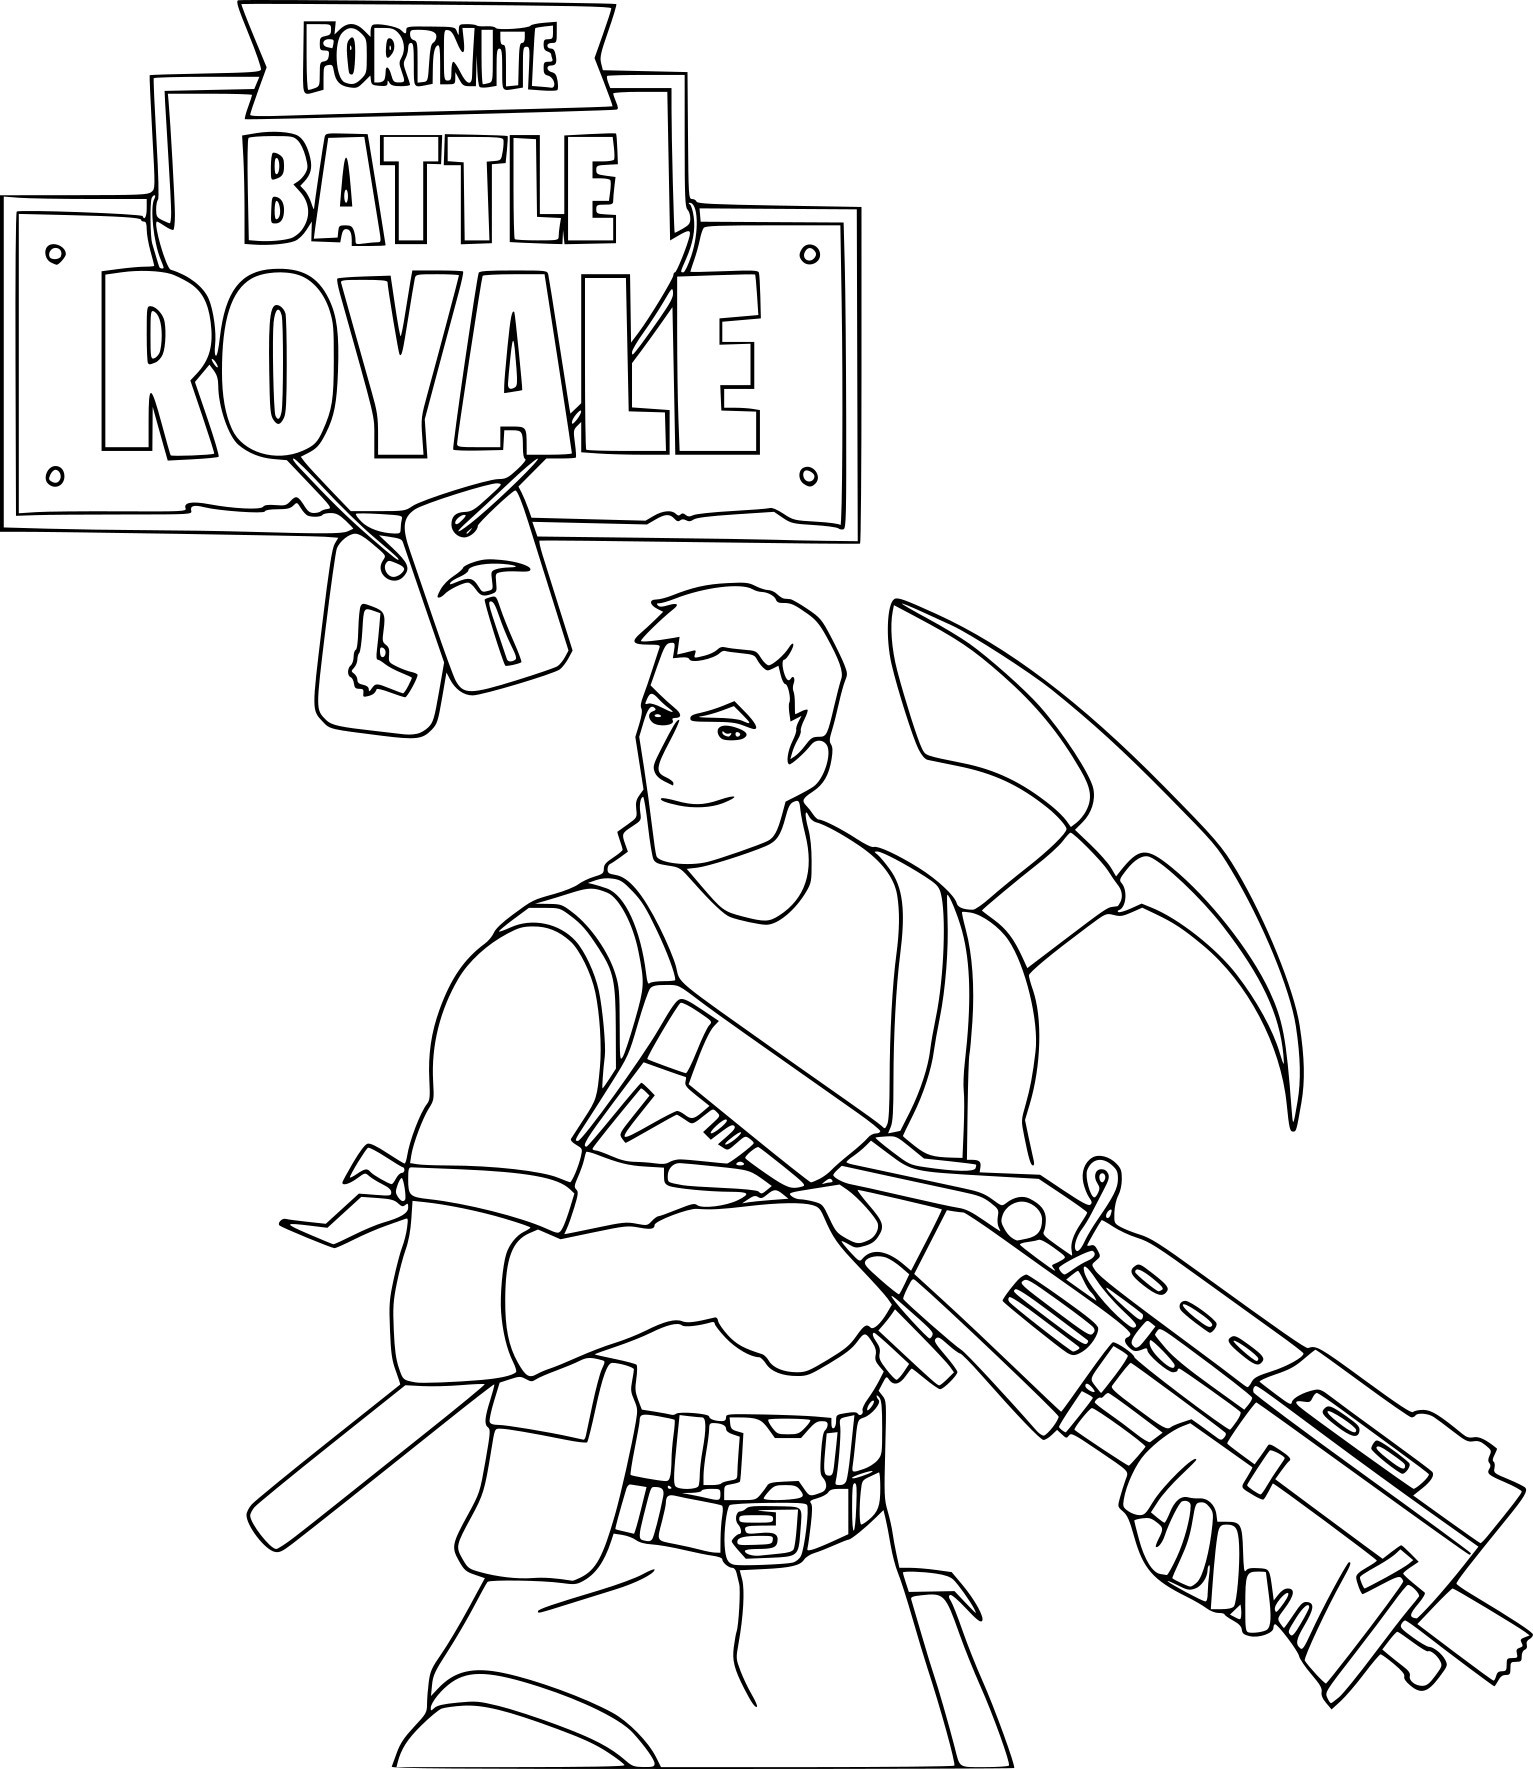 Coloriage De fortnite A Imprimer Gratuitement Inspirational Coloriage fortnite Of Coloriage De fortnite A Imprimer Gratuitement